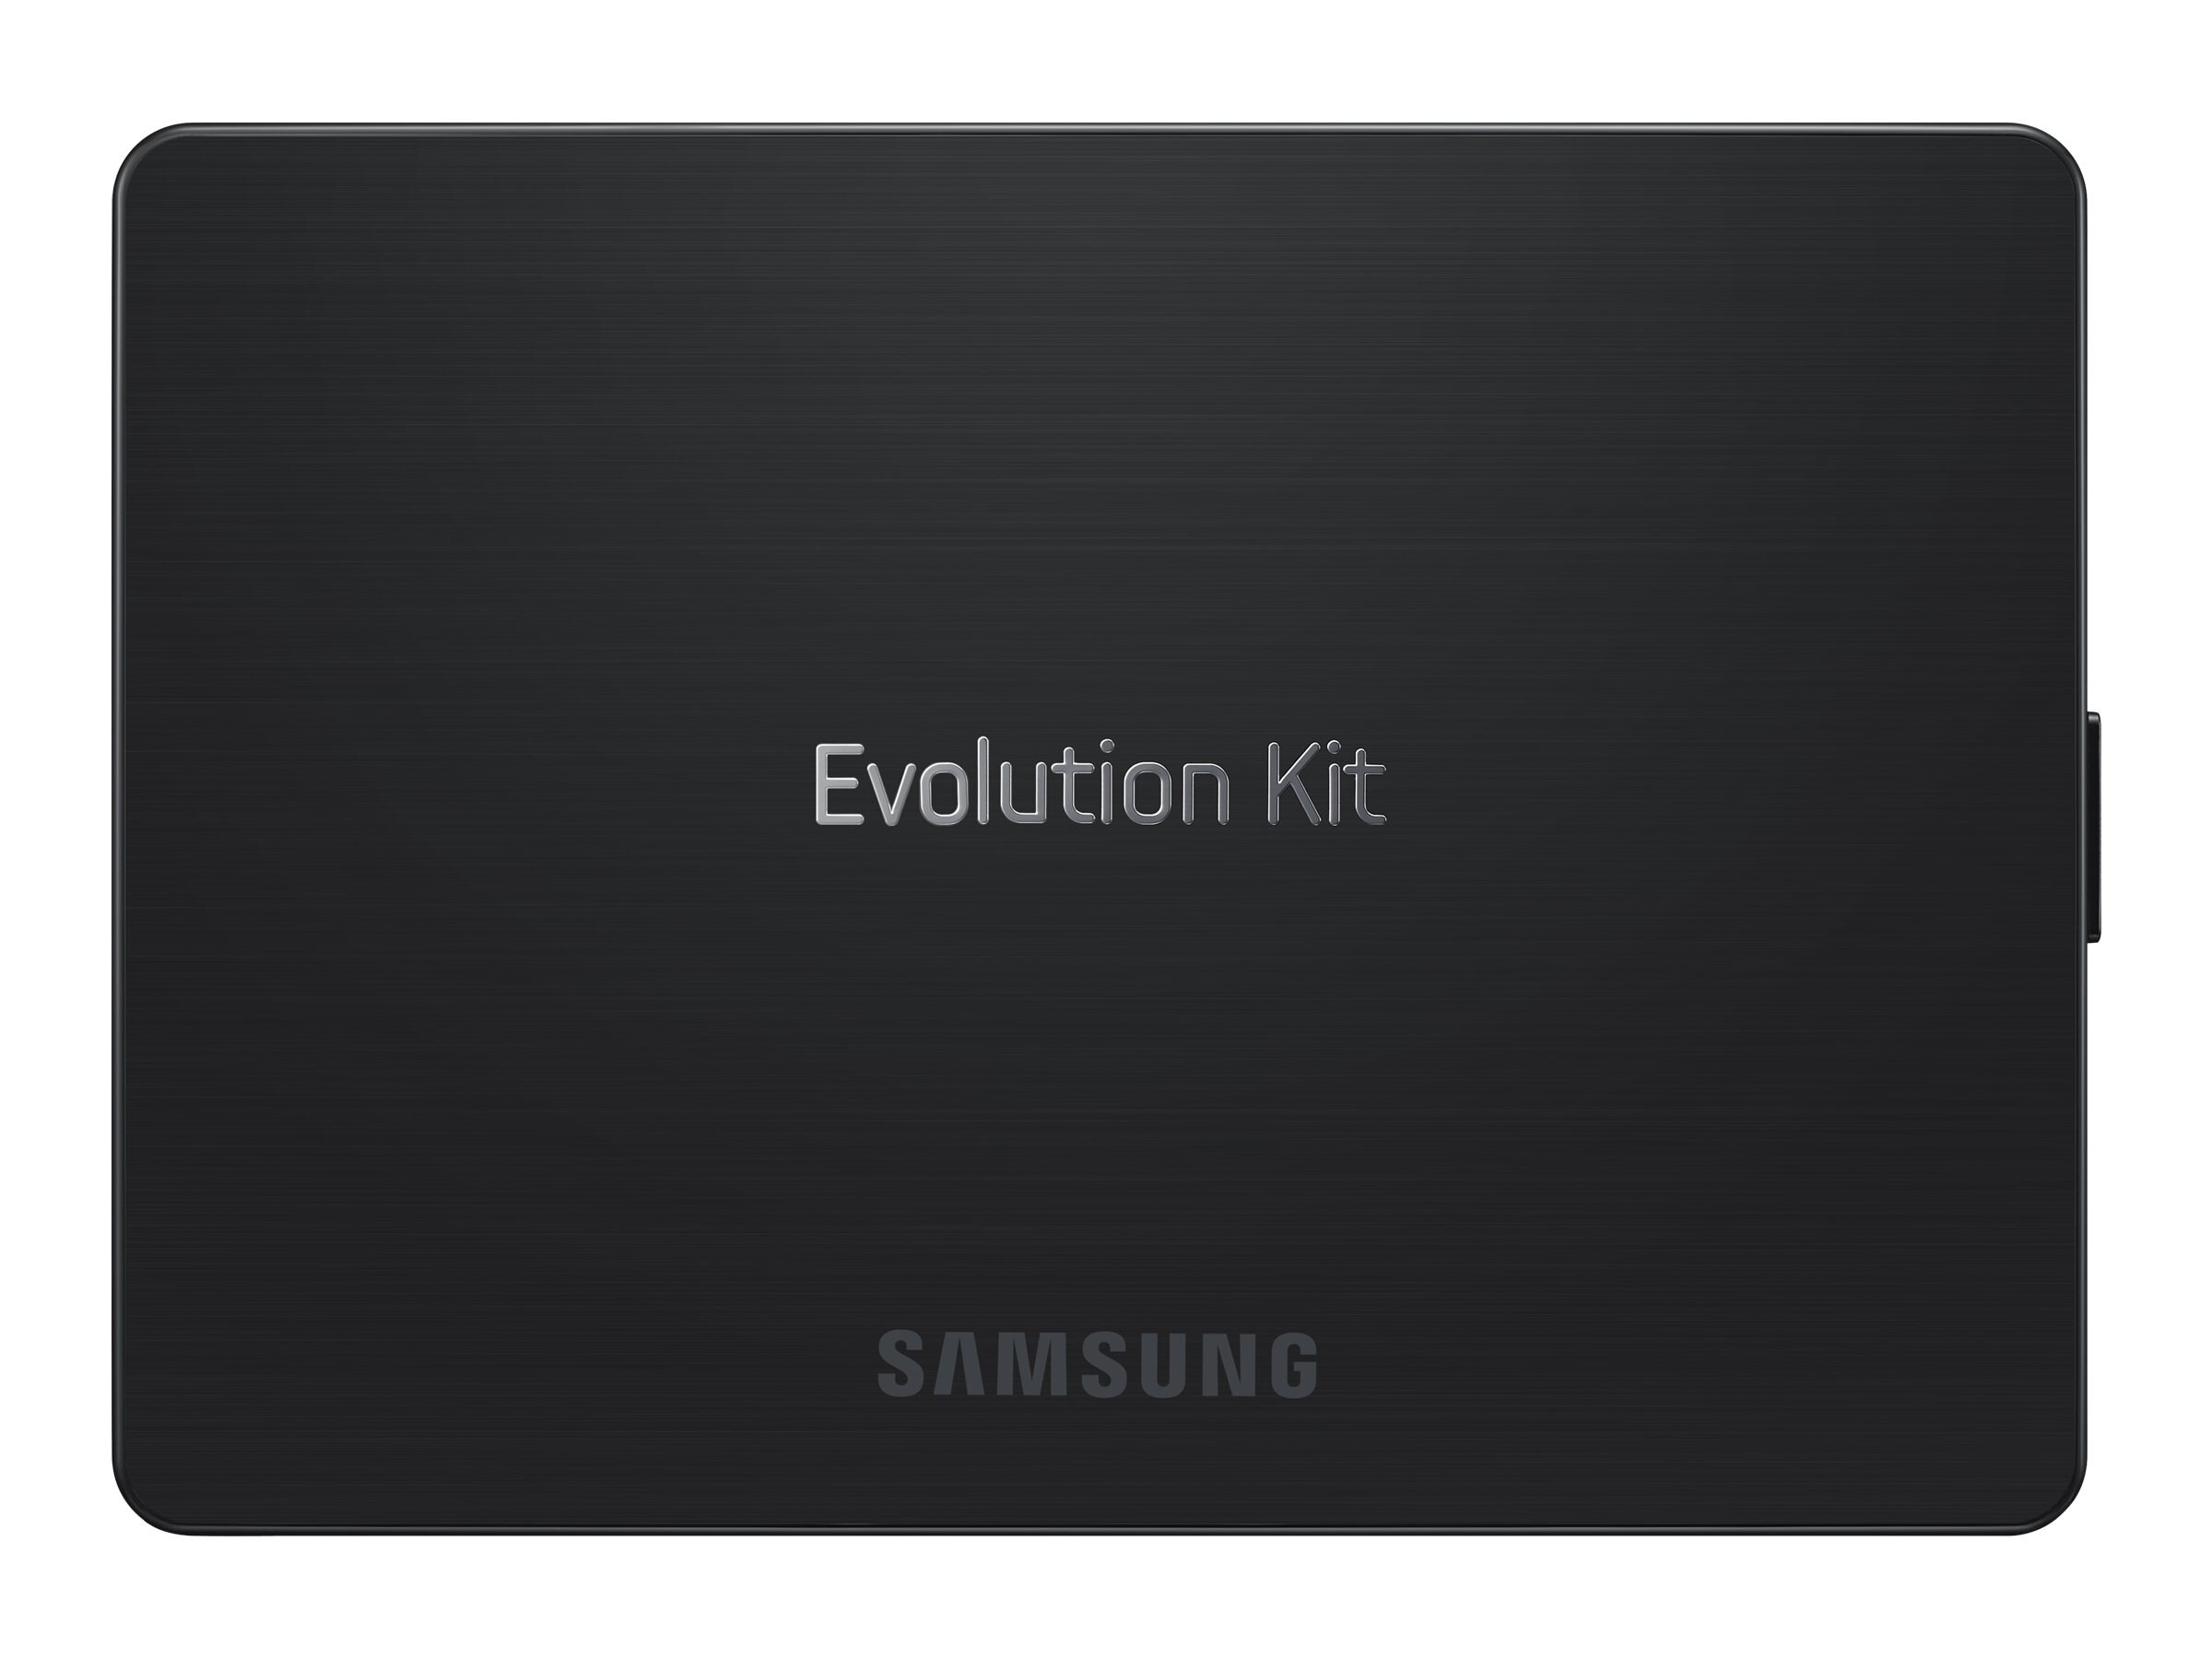 Samsung Smart TV Evolution Kit for LED ES7500, ES8000, ES9000 and PDP E8000 series, SEK-1000/ZA